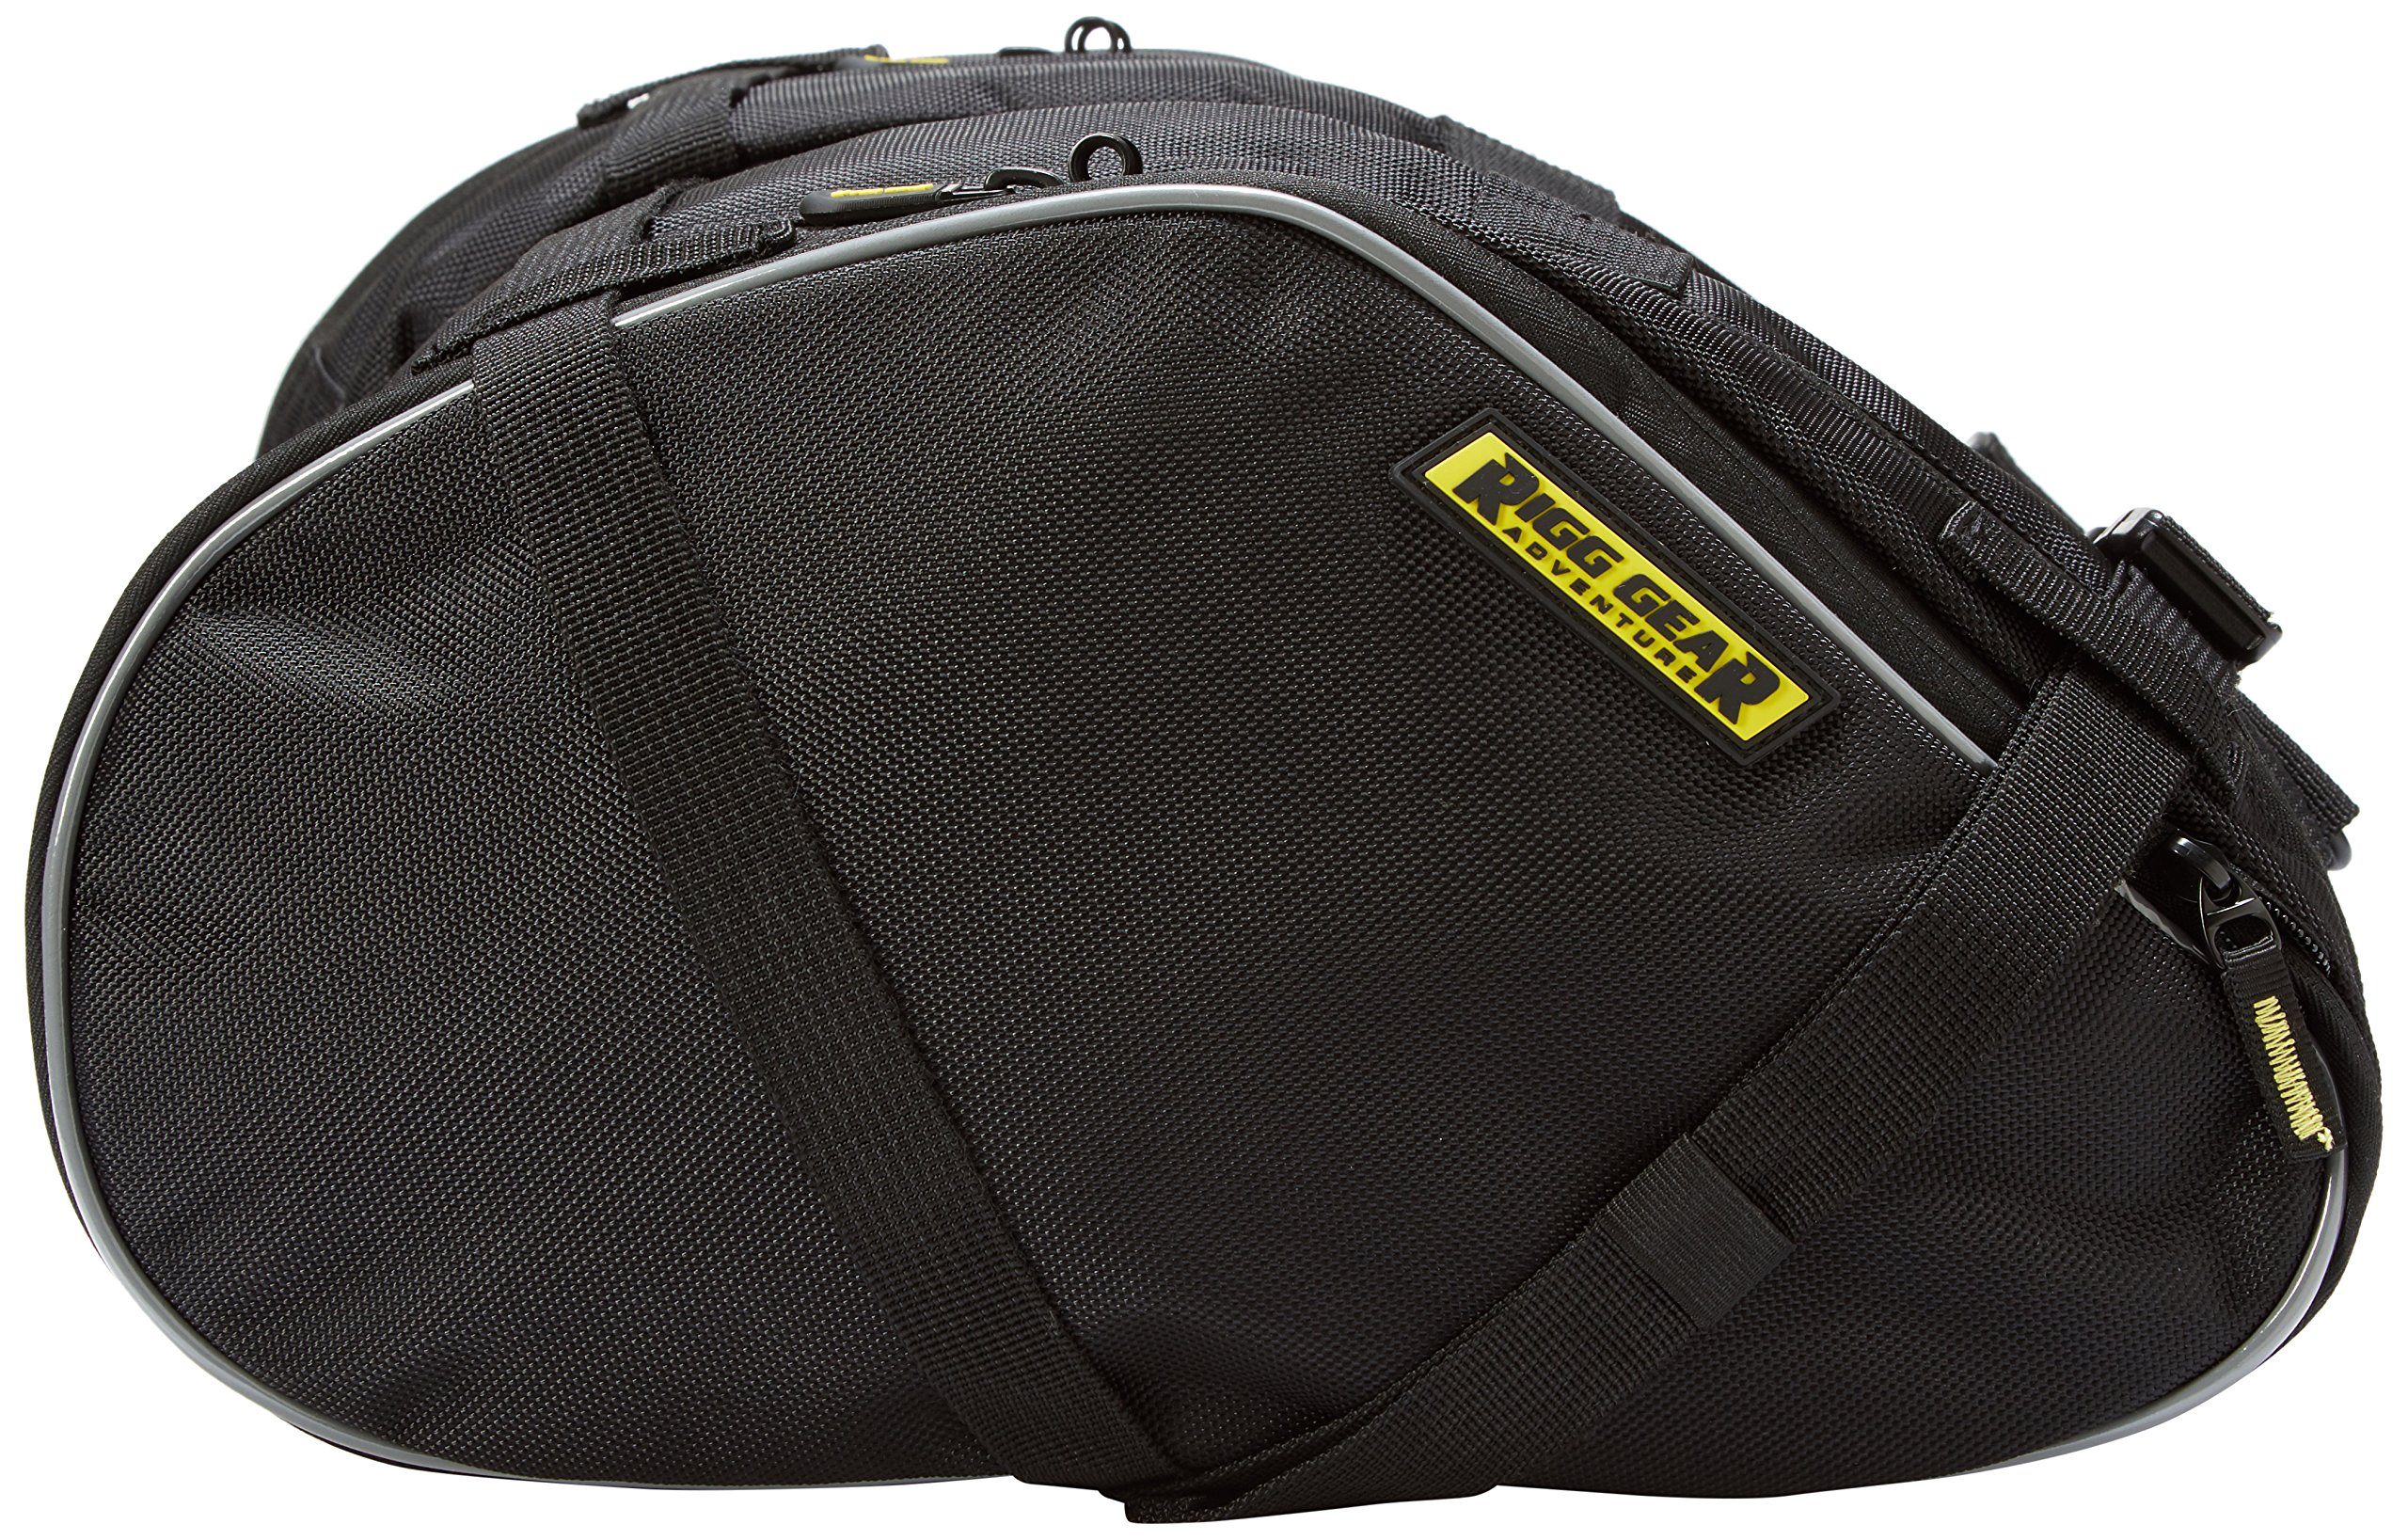 Nelson-Rigg RG-020 Black Dual Sport Motorcycle Saddlebag by Nelson-Rigg